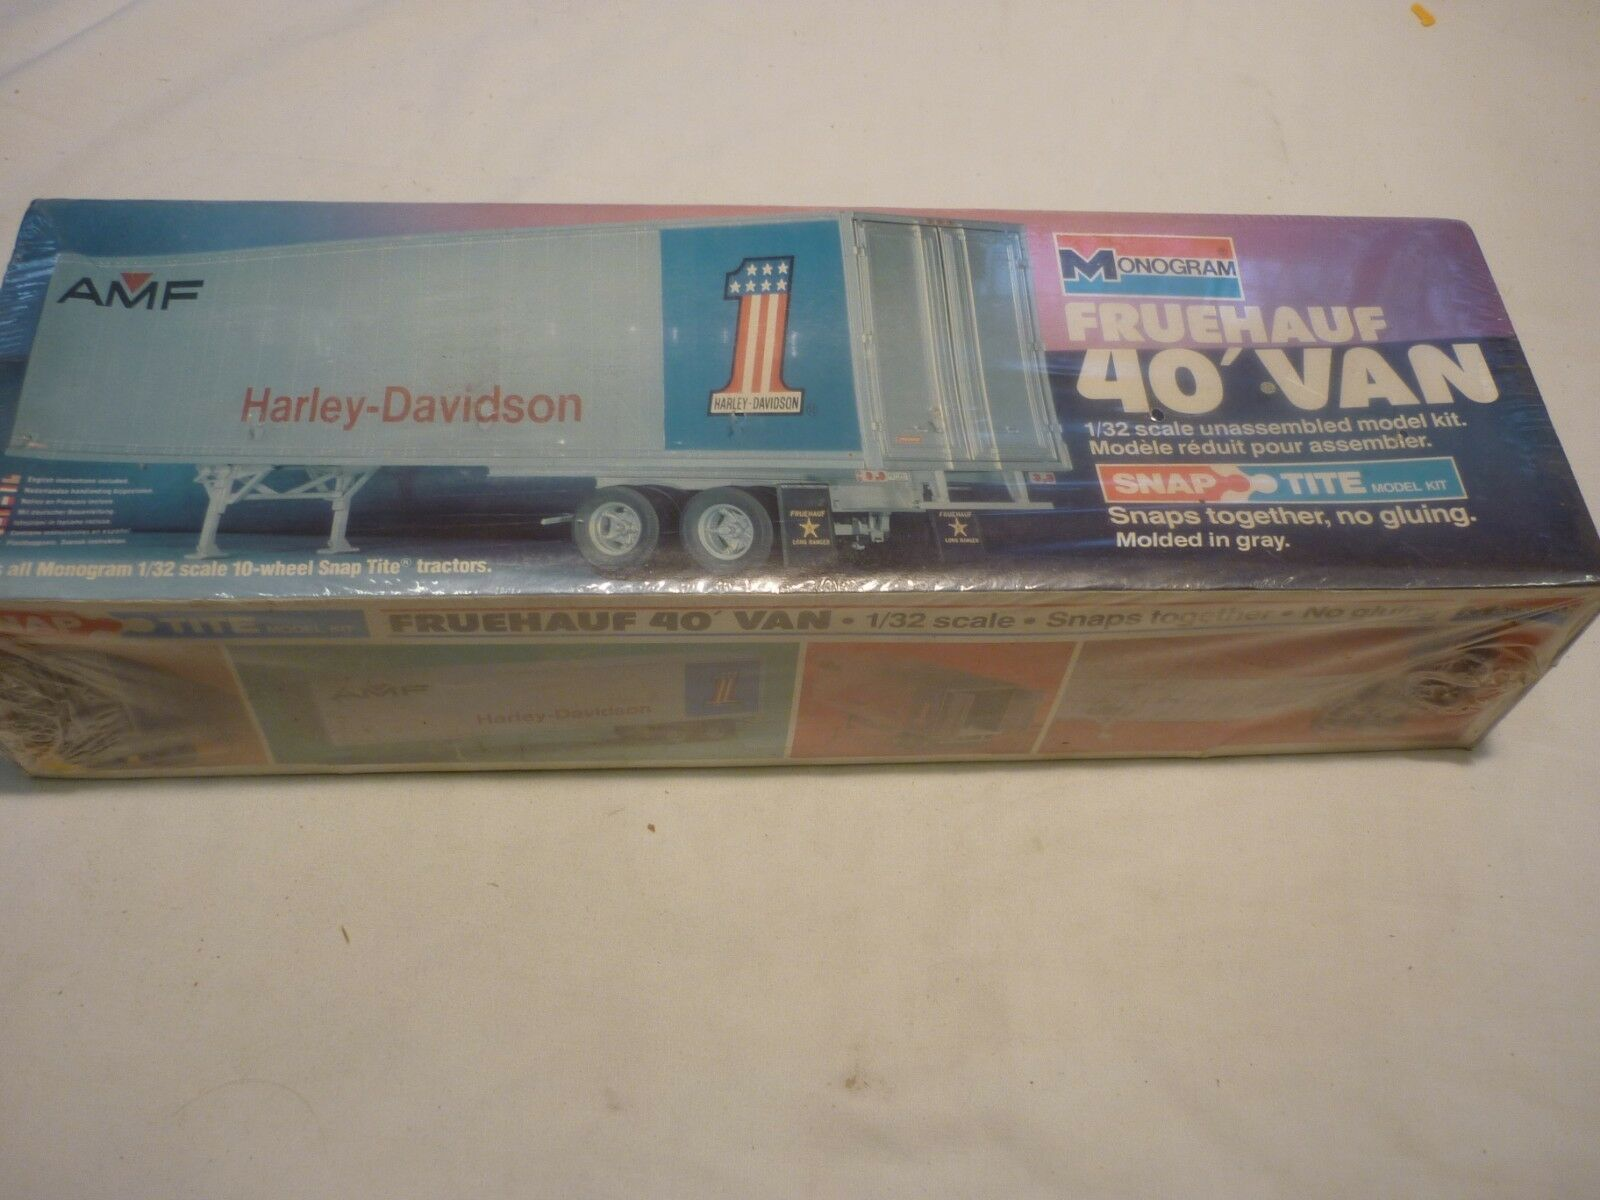 A Vintage monogram un-opened plastic kit of a box trailer, Harley Davidson